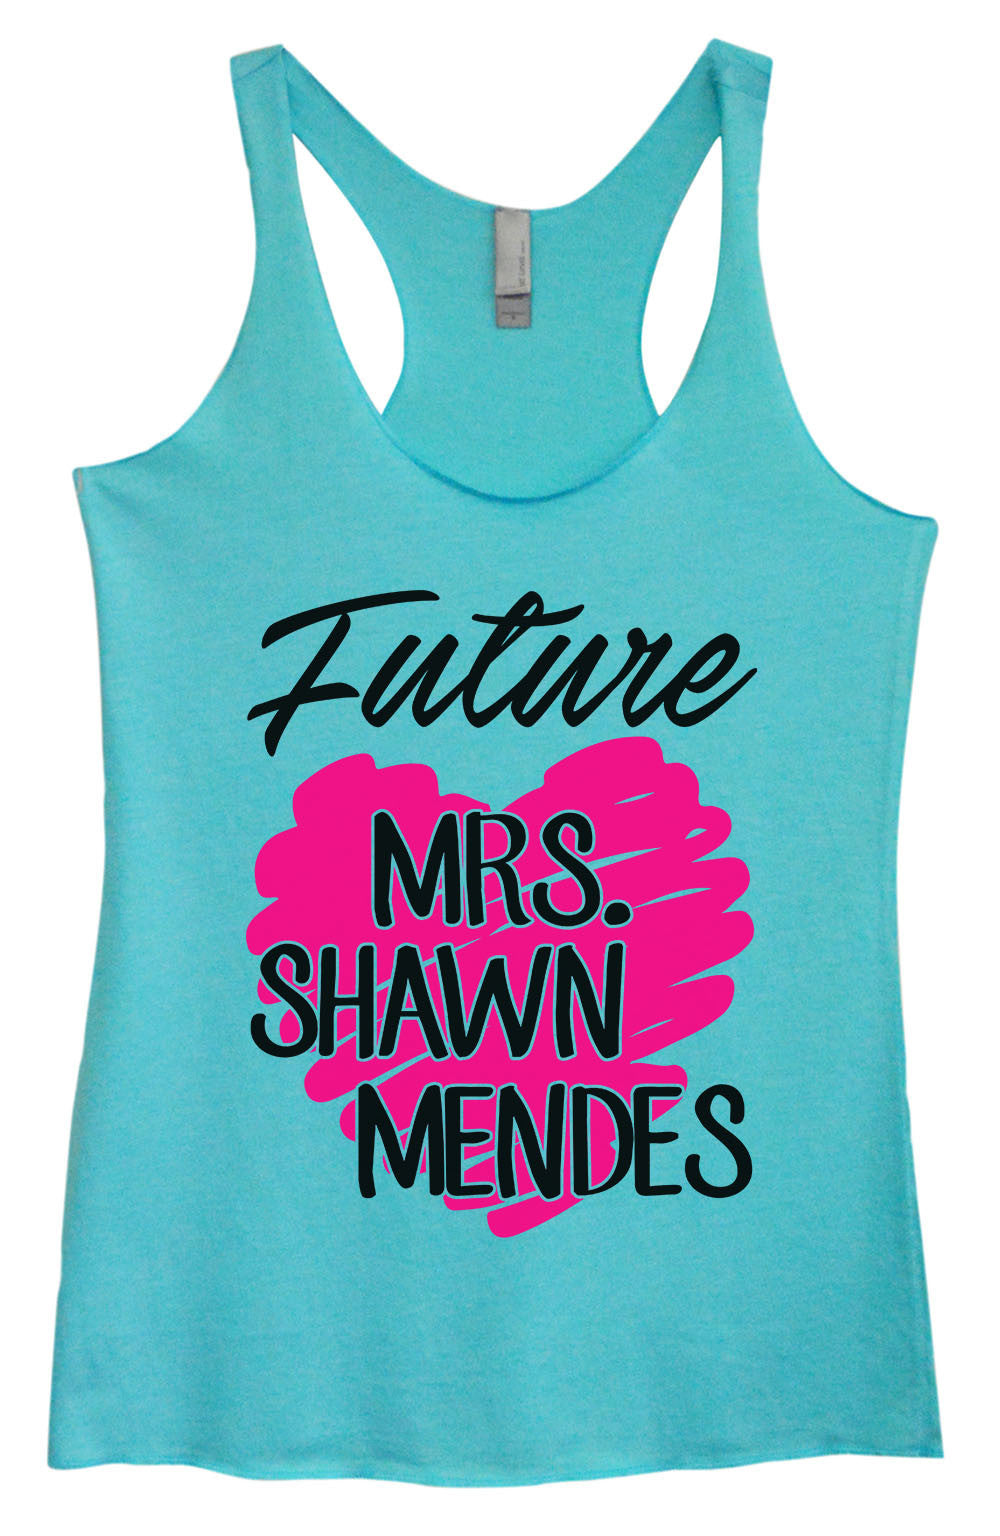 Womens Fashion Triblend Tank Top - Future MRS. Shawn Mendes - Tri-1415 - Funny Shirts Tank Tops Burnouts and Triblends  - 2